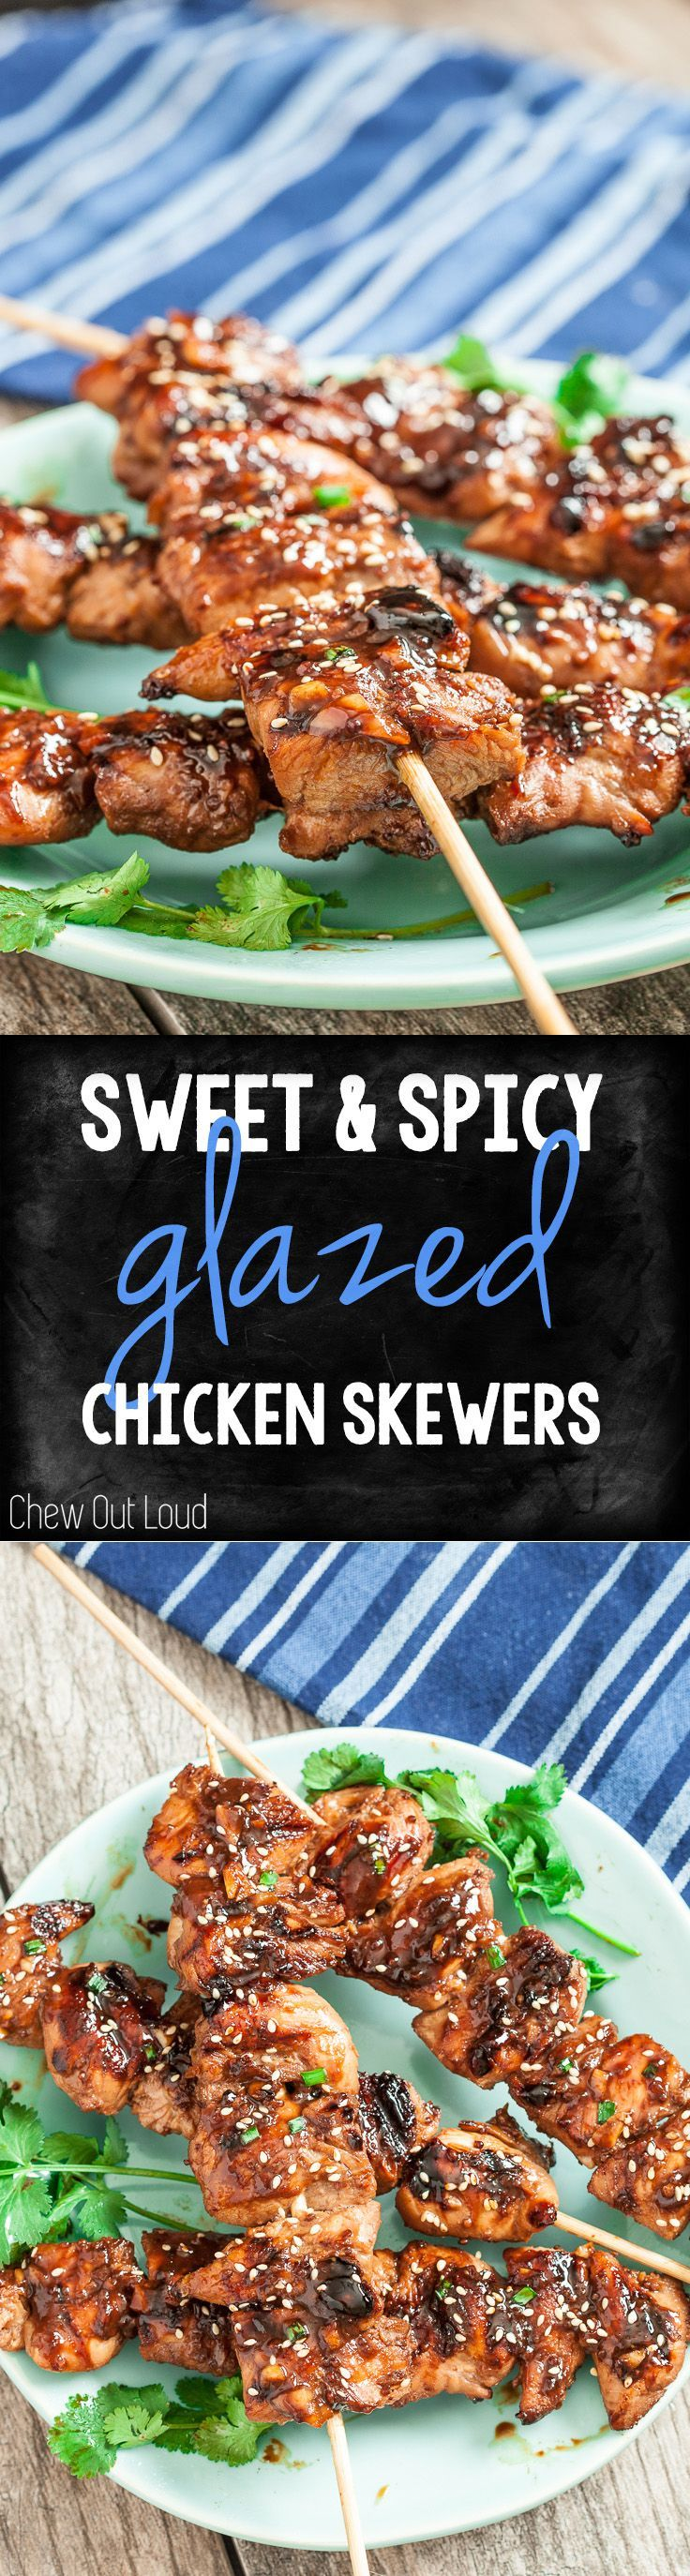 Sweet & Spicy Glazed Chicken Skewers. So easy and can be prepped the night before. A favorite at all the cookouts.